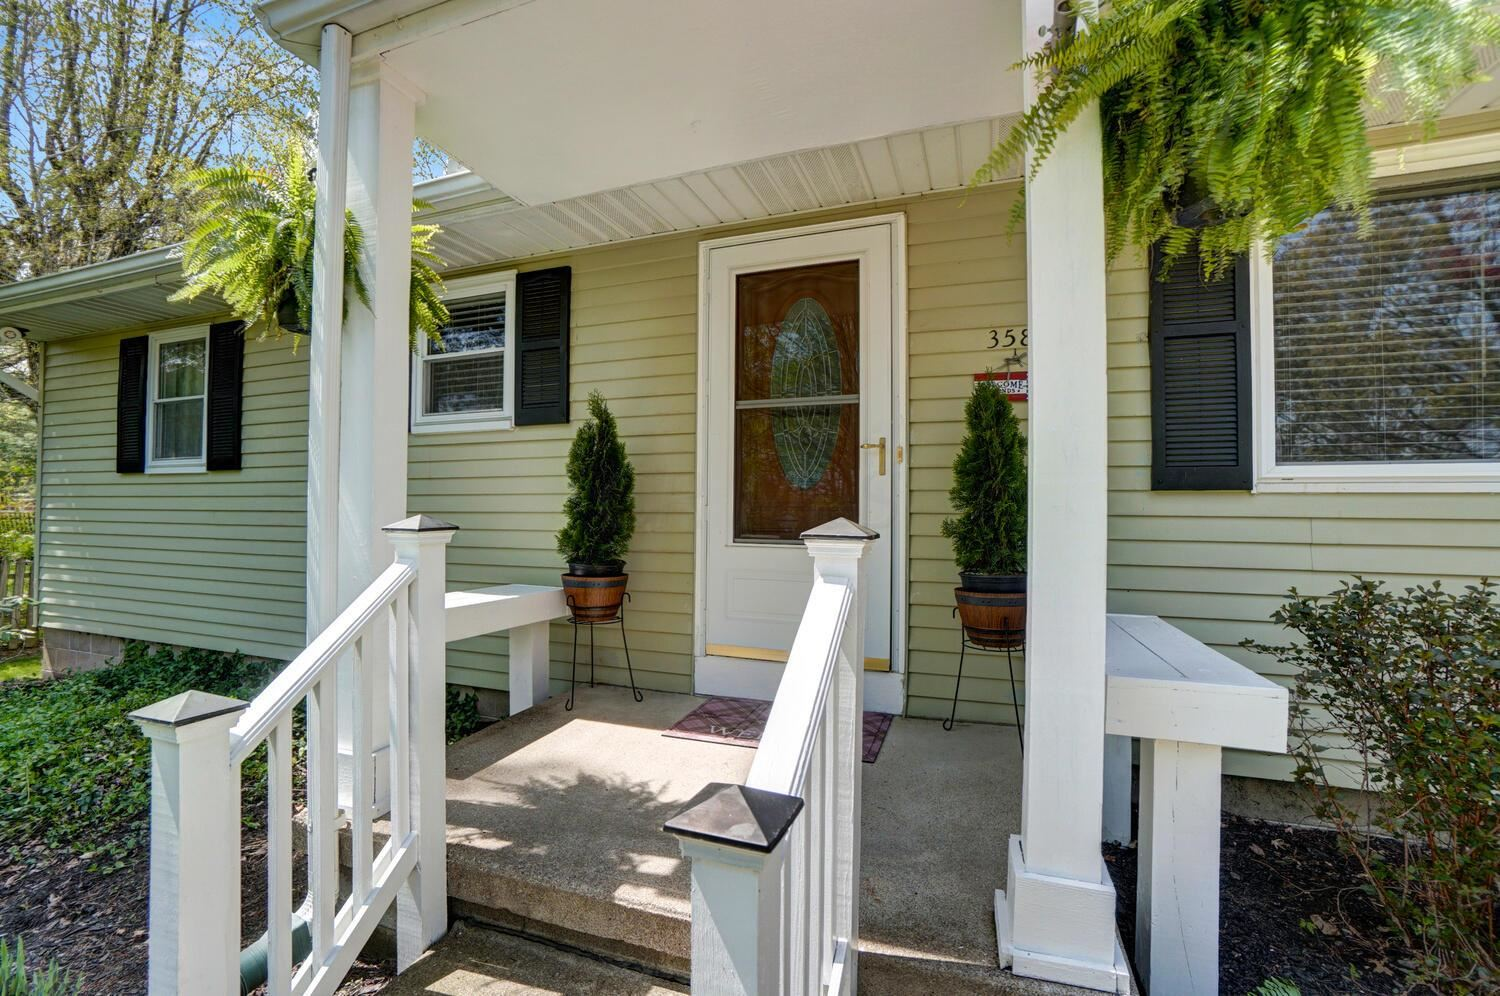 Photo of 3580 S Old 3c Road, Galena, OH 43021 (MLS # 221012460)